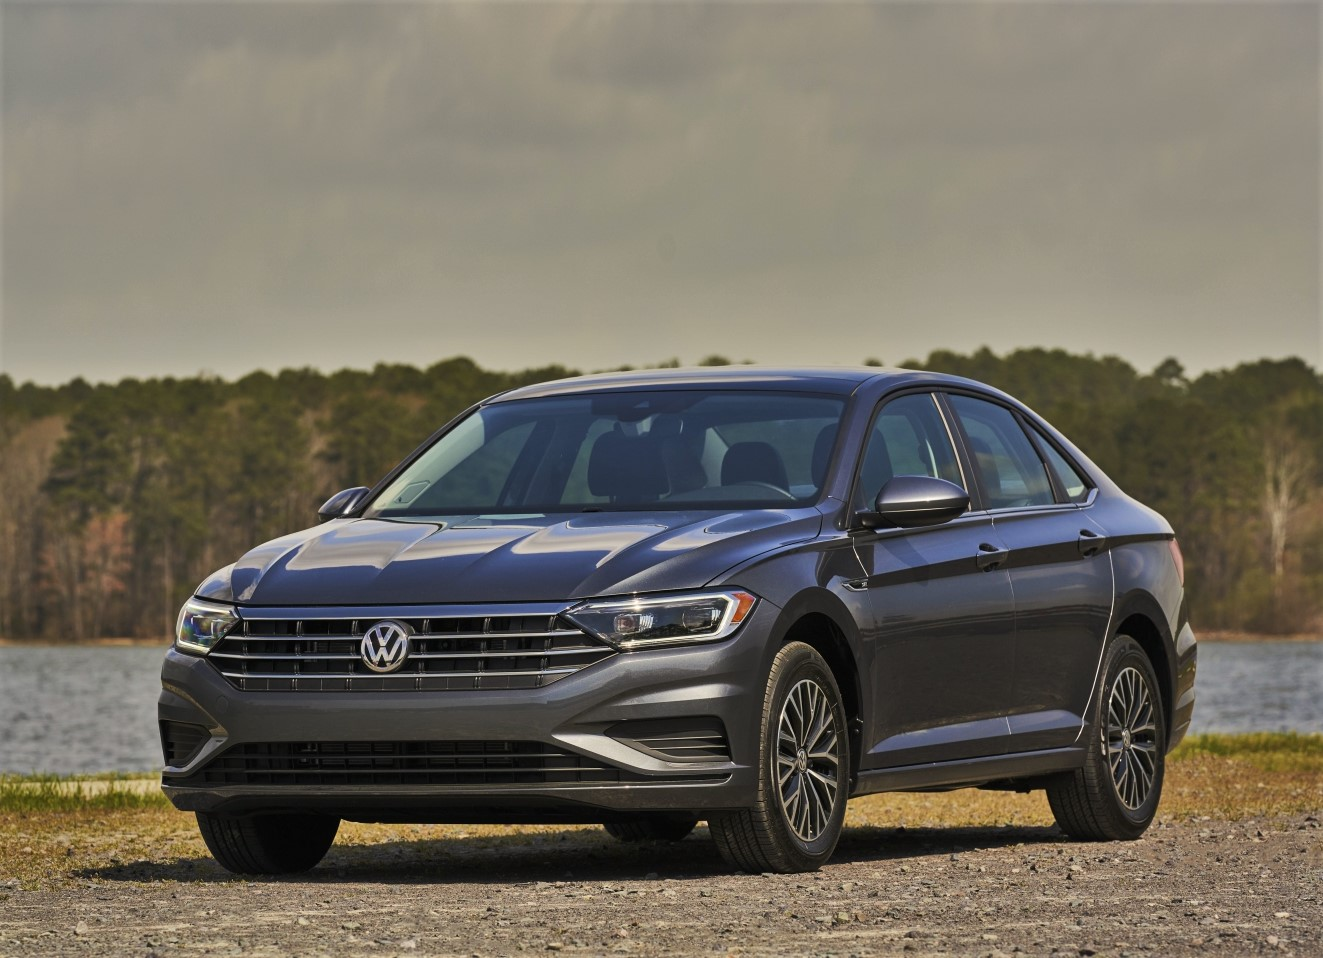 ETTA NAMED A FINALIST FOR GREEN CAR JOURNAL'S 2019 GREEN CAR OF THE YEAR